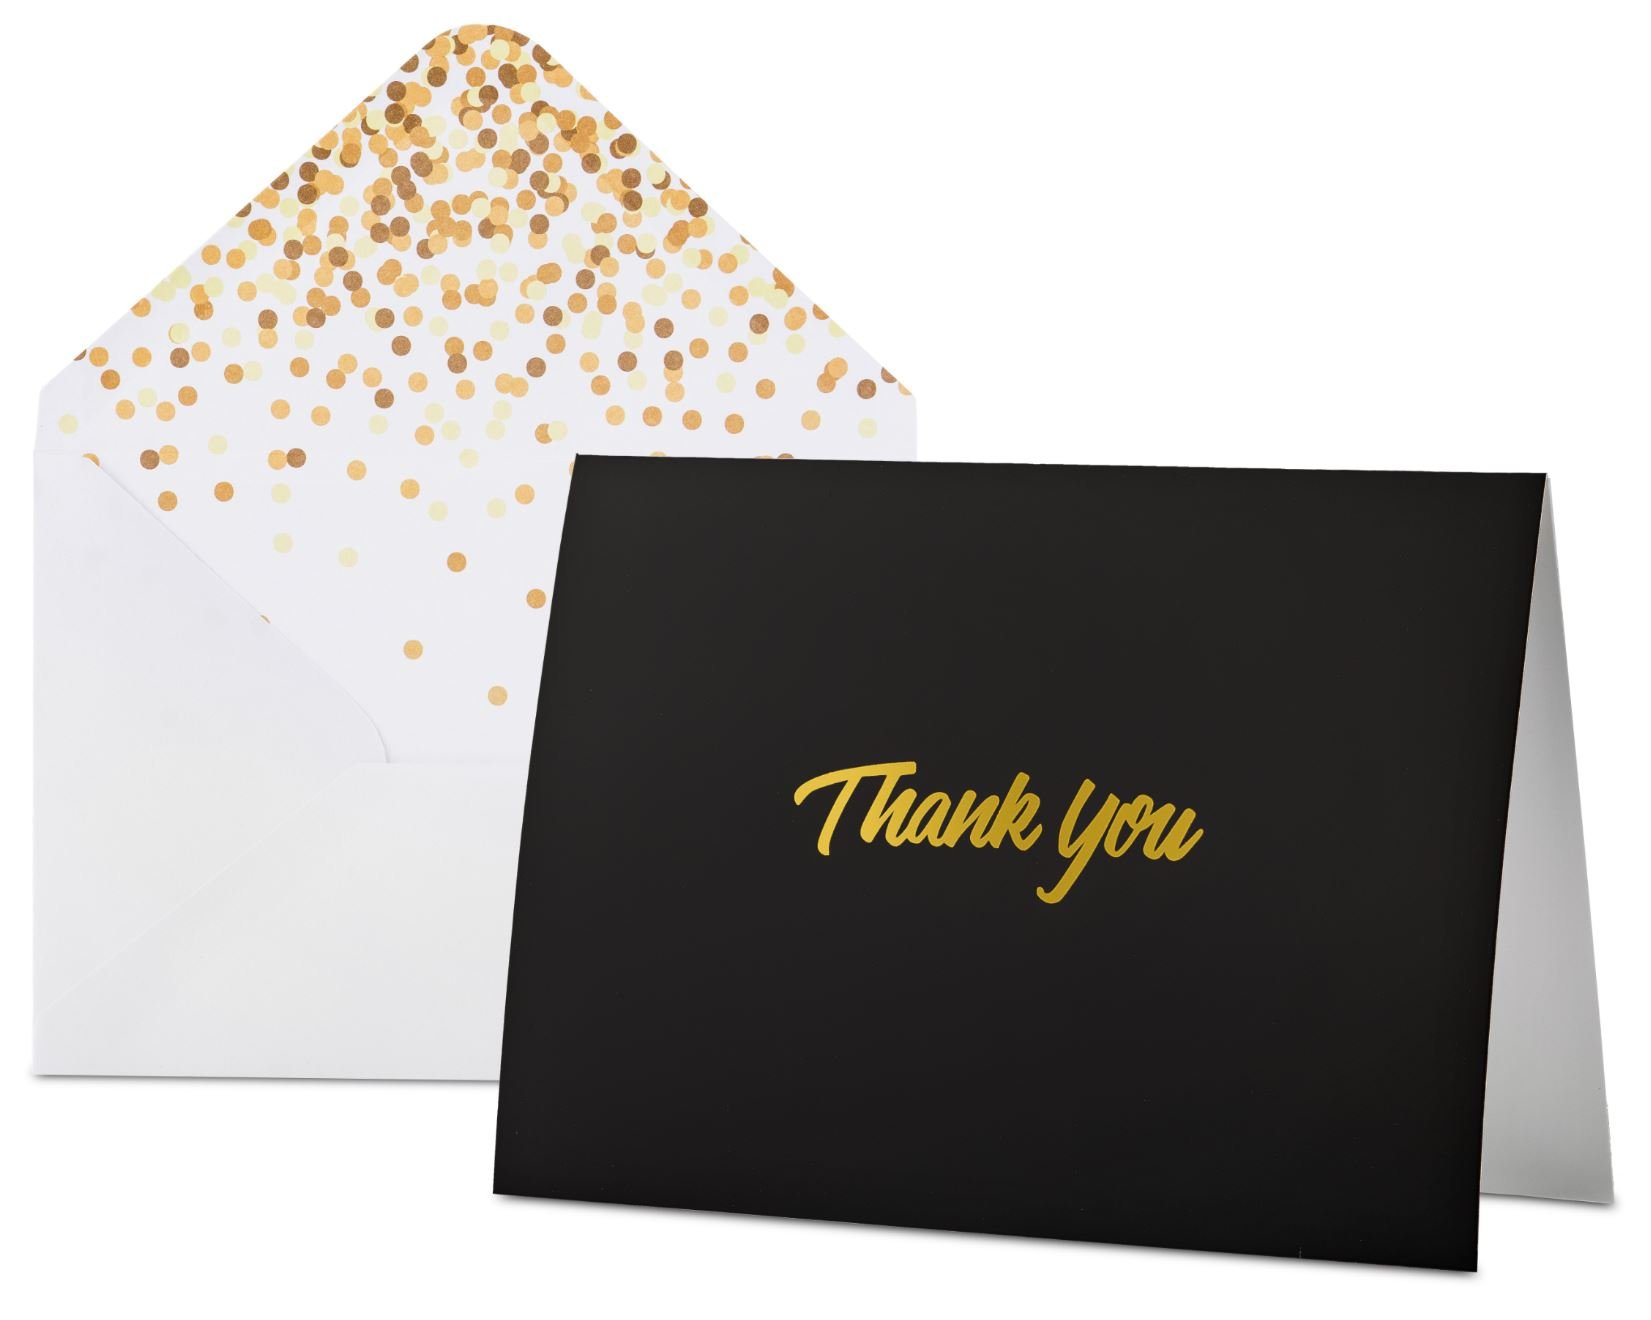 100 Thank You Cards with Envelopes - Thank You Notes, Black & Gold Foil - Blank Cards with Envelopes - For Business, Wedding, Graduation, Baby/Bridal Shower, Funeral, Professional Thank You Cards Bulk